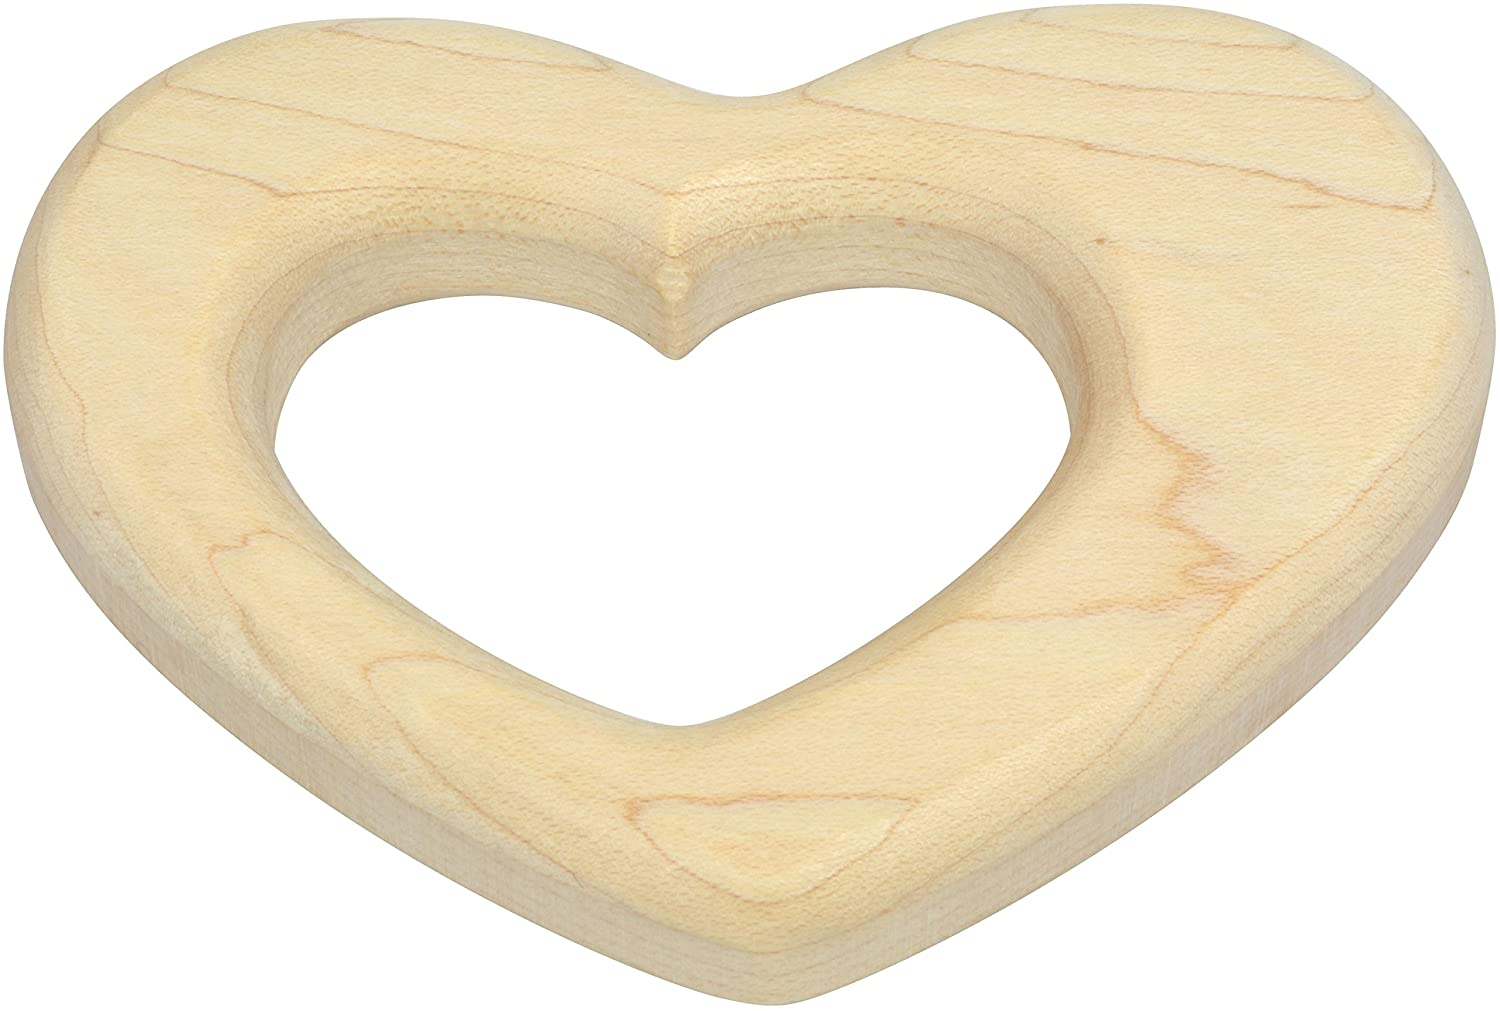 Made in USA Heart Shaped Maple Teether